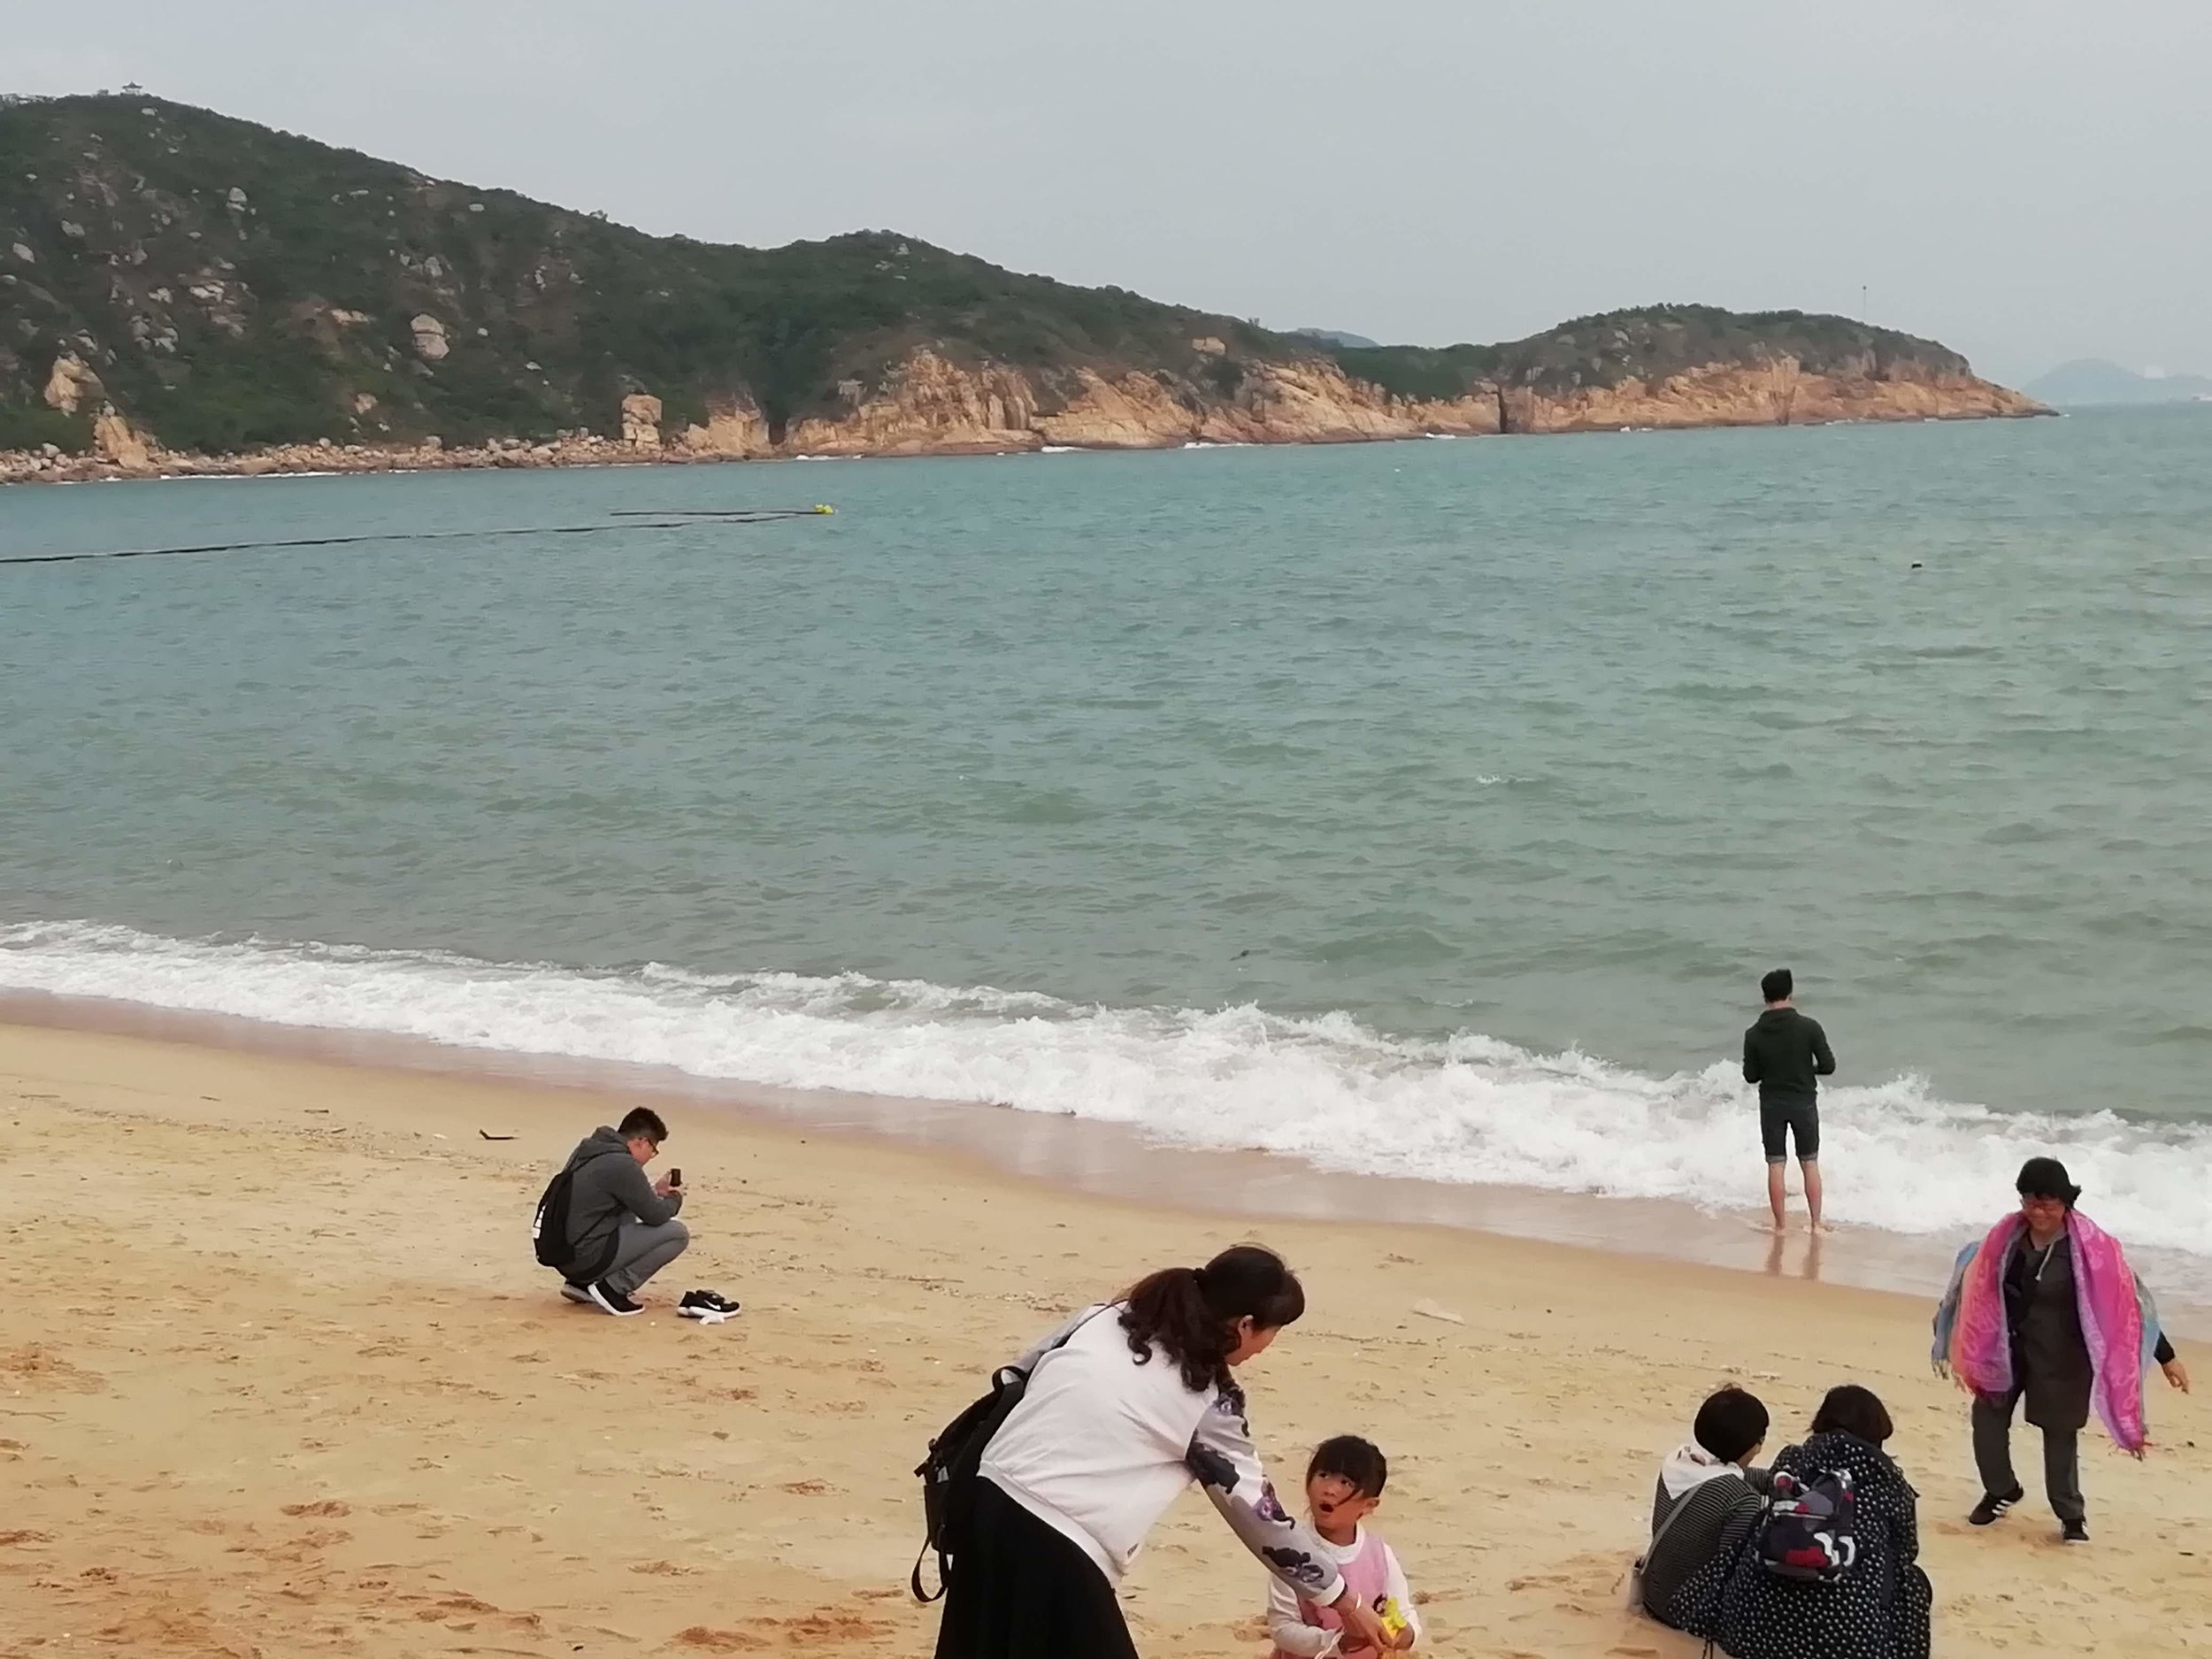 The beach at Cheung Chau